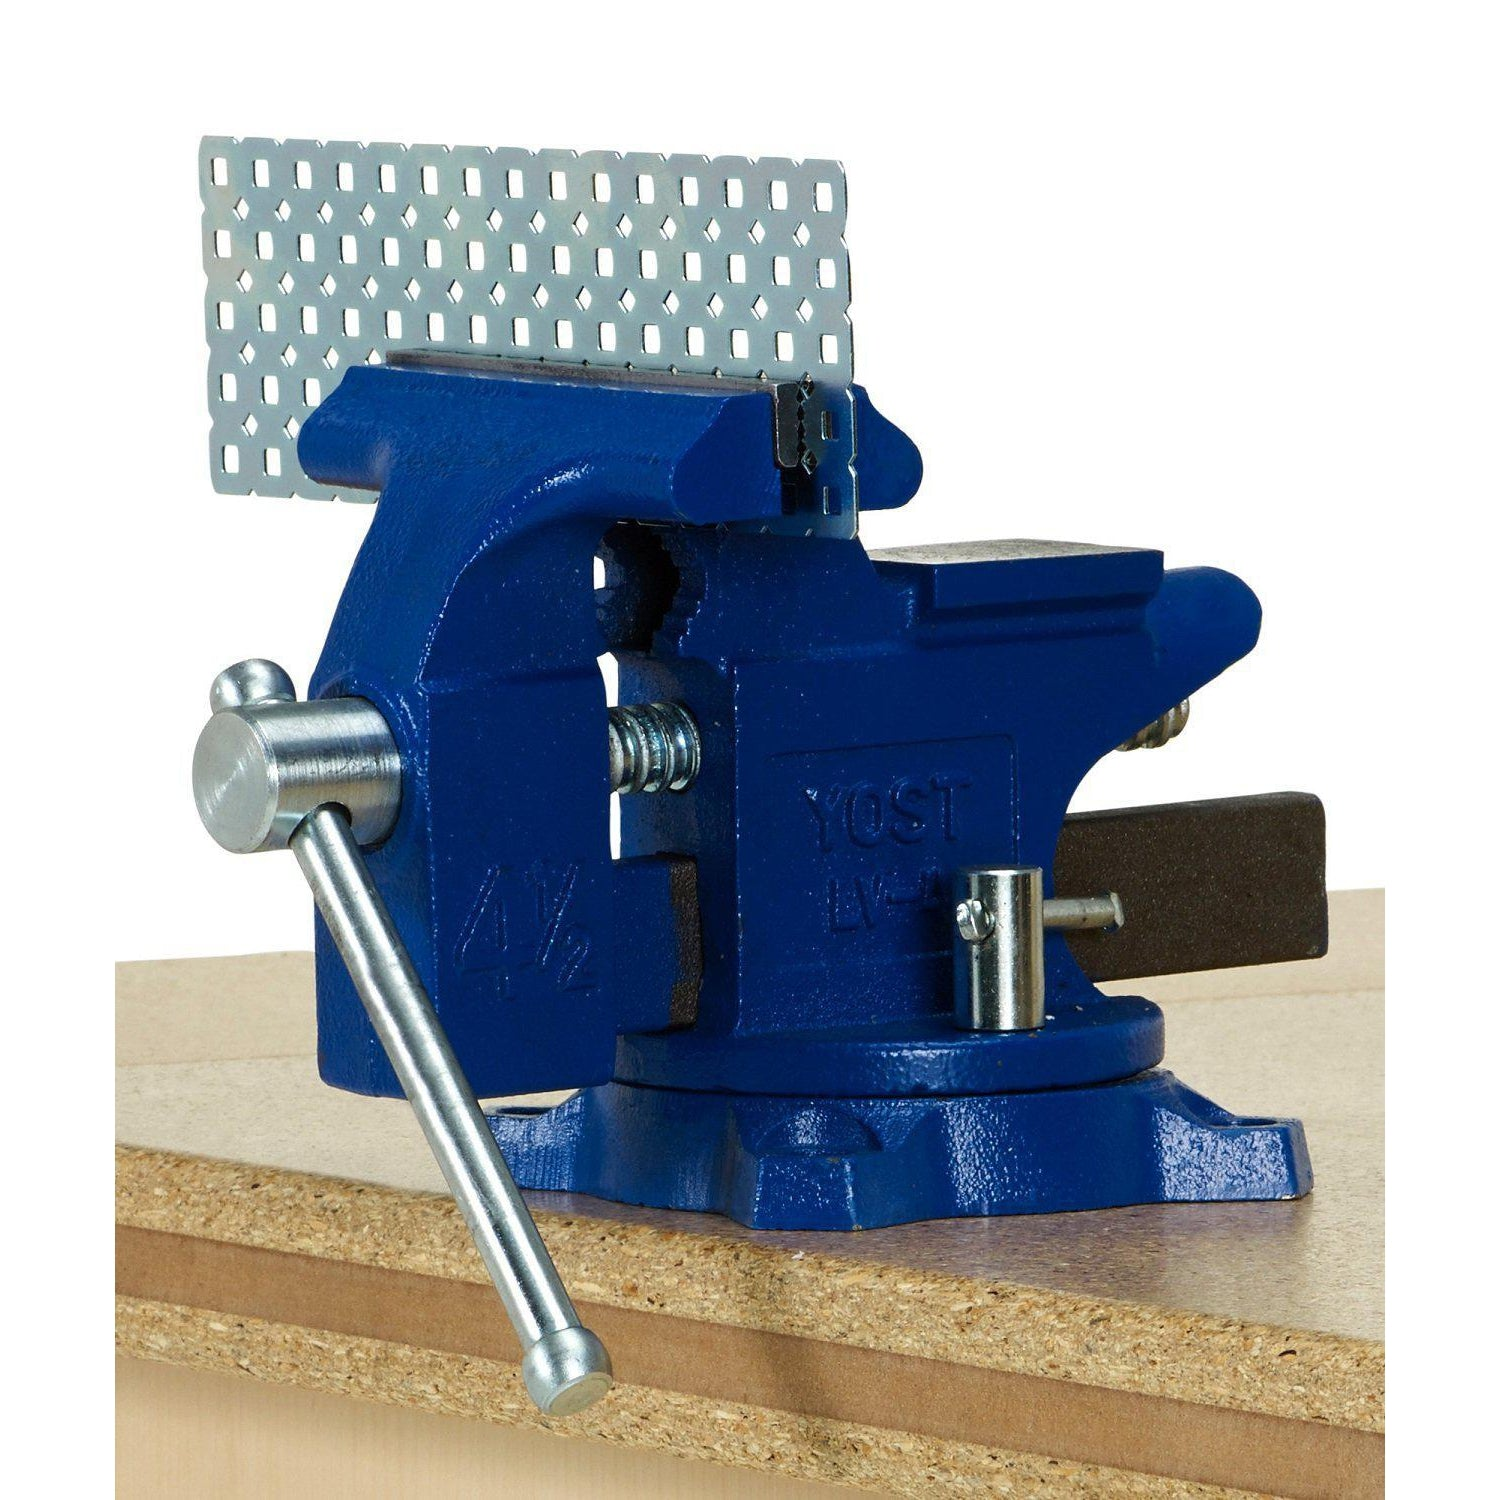 Vise for Robotics Workbench